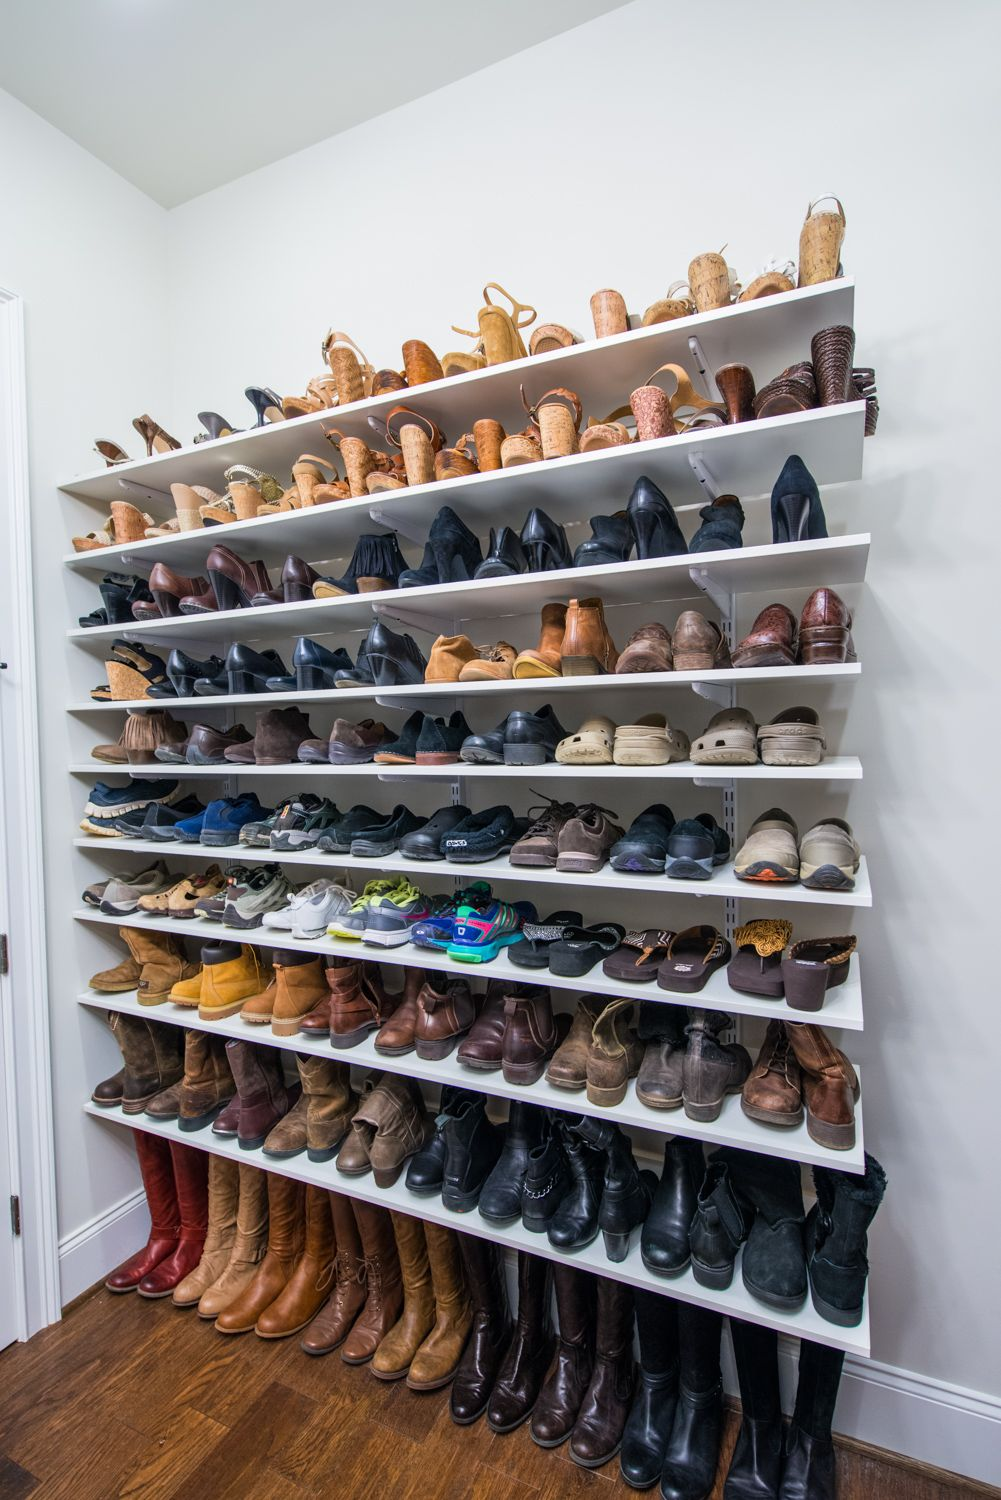 Keep your shoes on point with adjustable shelving like Organized Living  freedomRail. Move the shelves as the seasons change to accommodate  different shoes ... 8df904ee0869